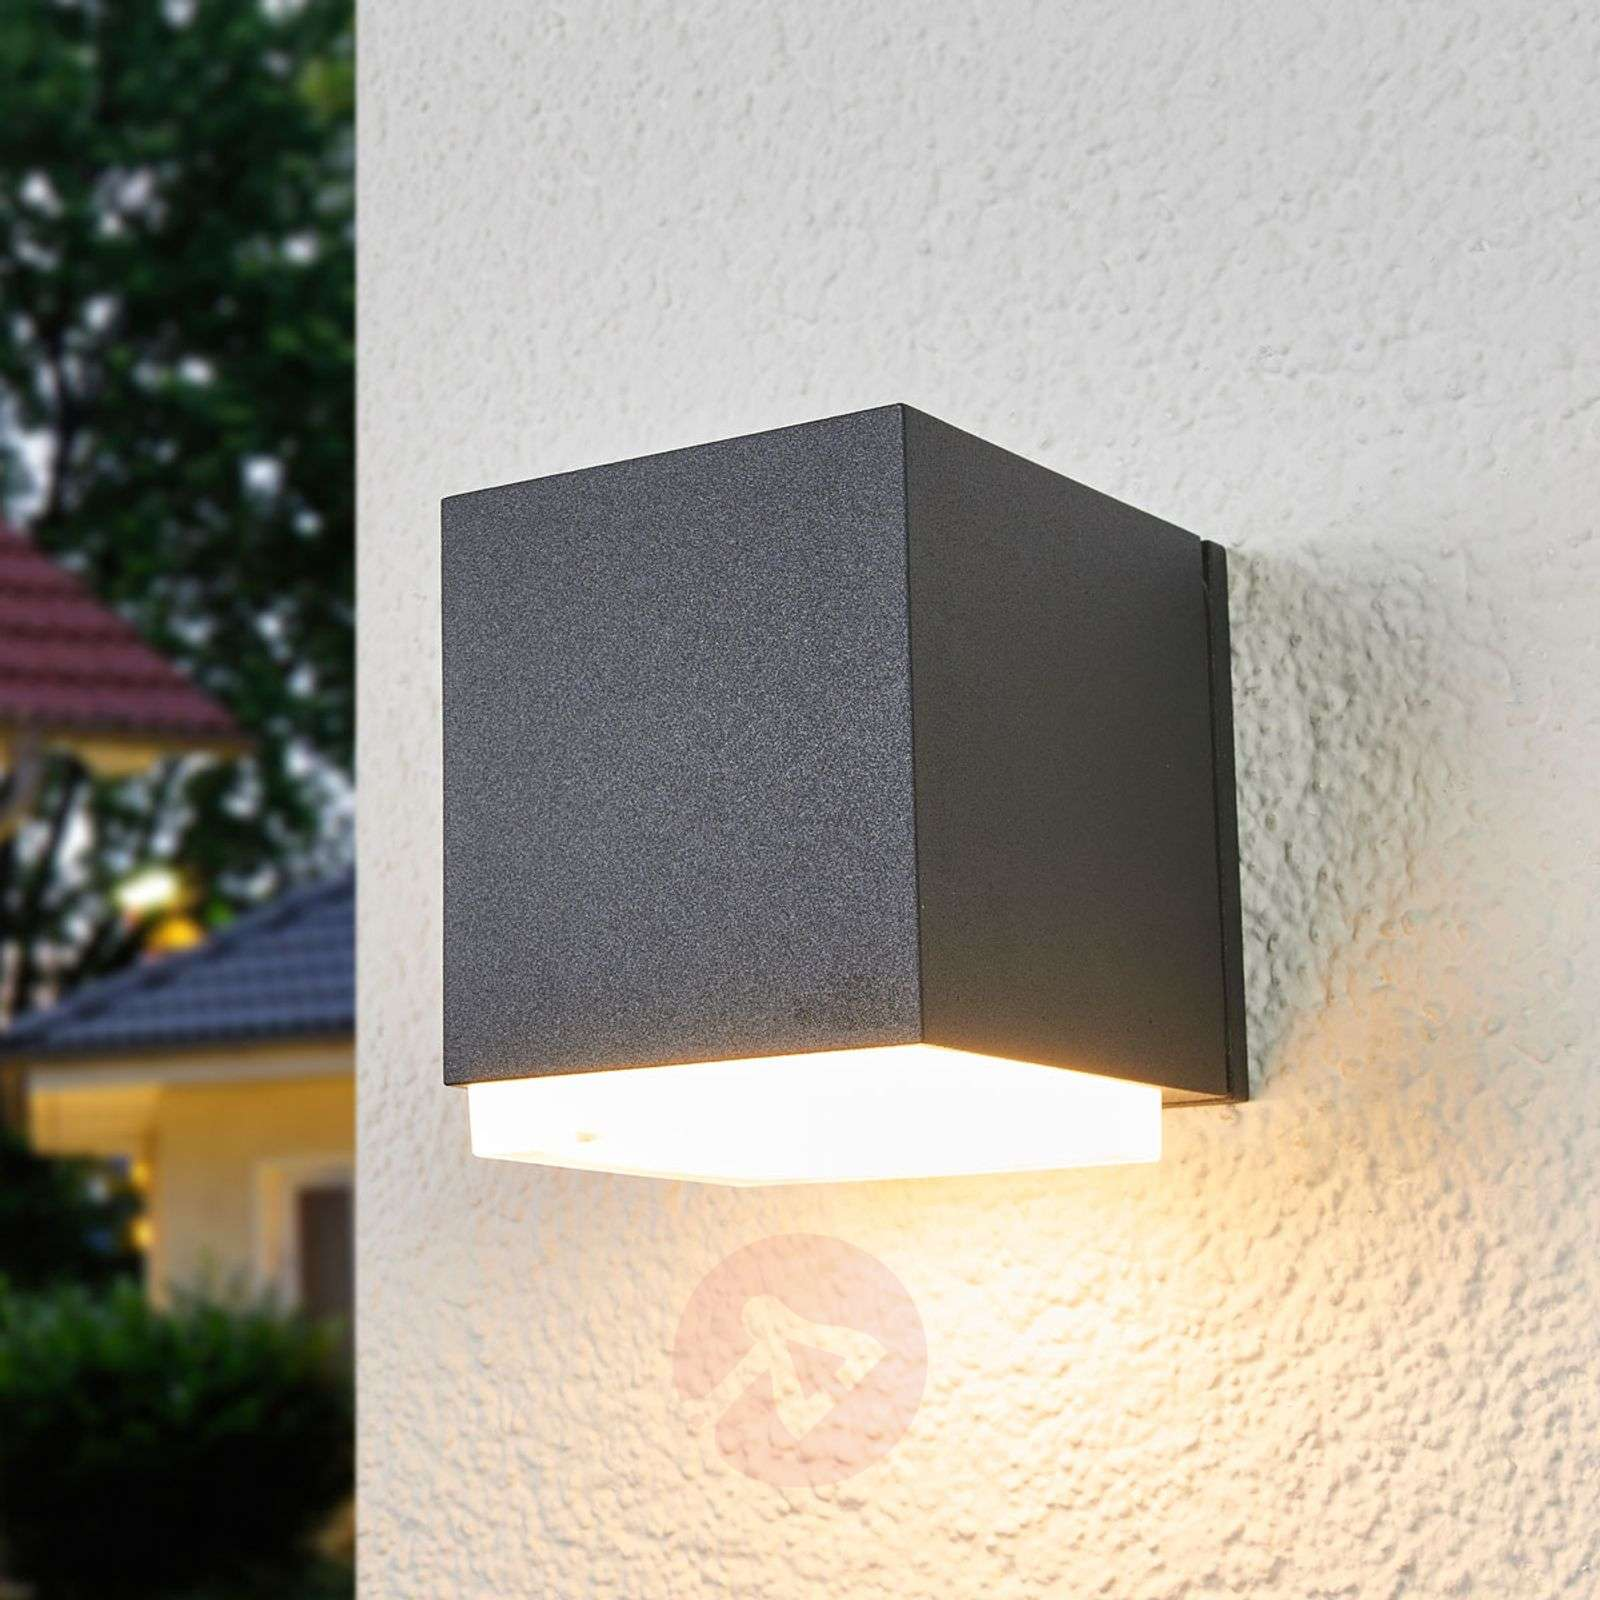 Acquista applique da esterni ben a cubo luce downlight lampade